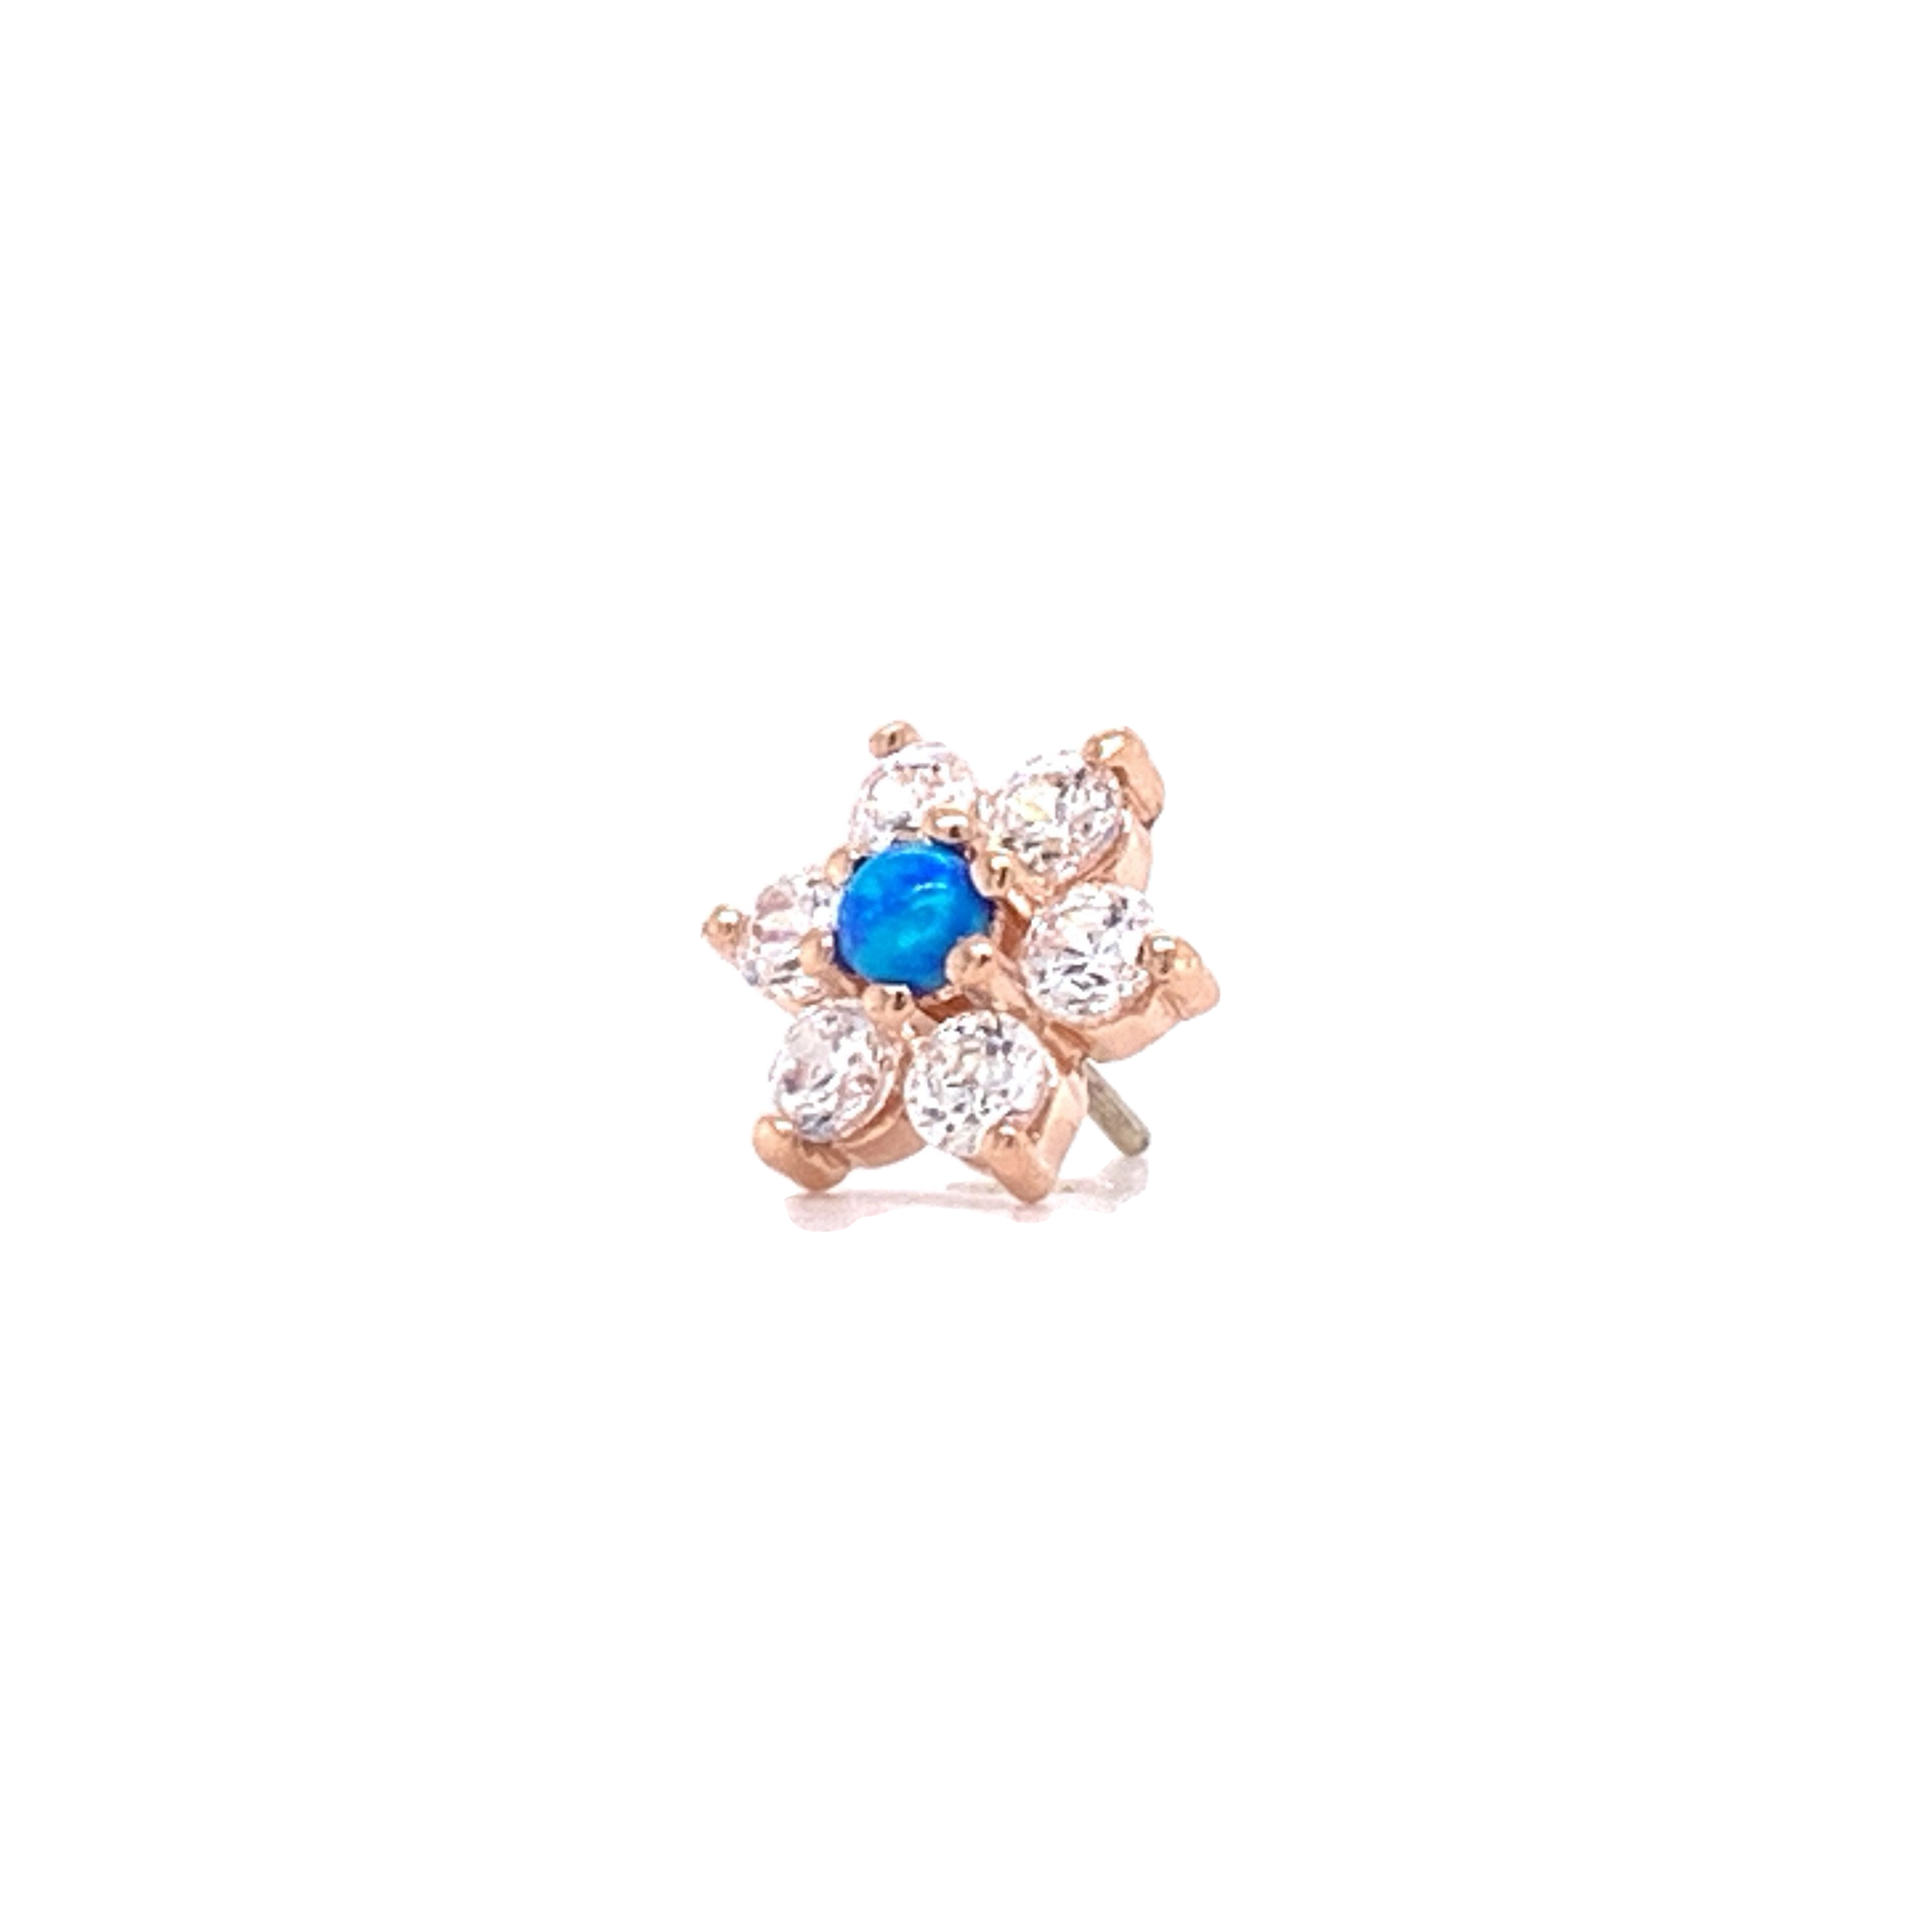 14Ct Rose Gold Flower With Swarovski & Blue Opal Attachment